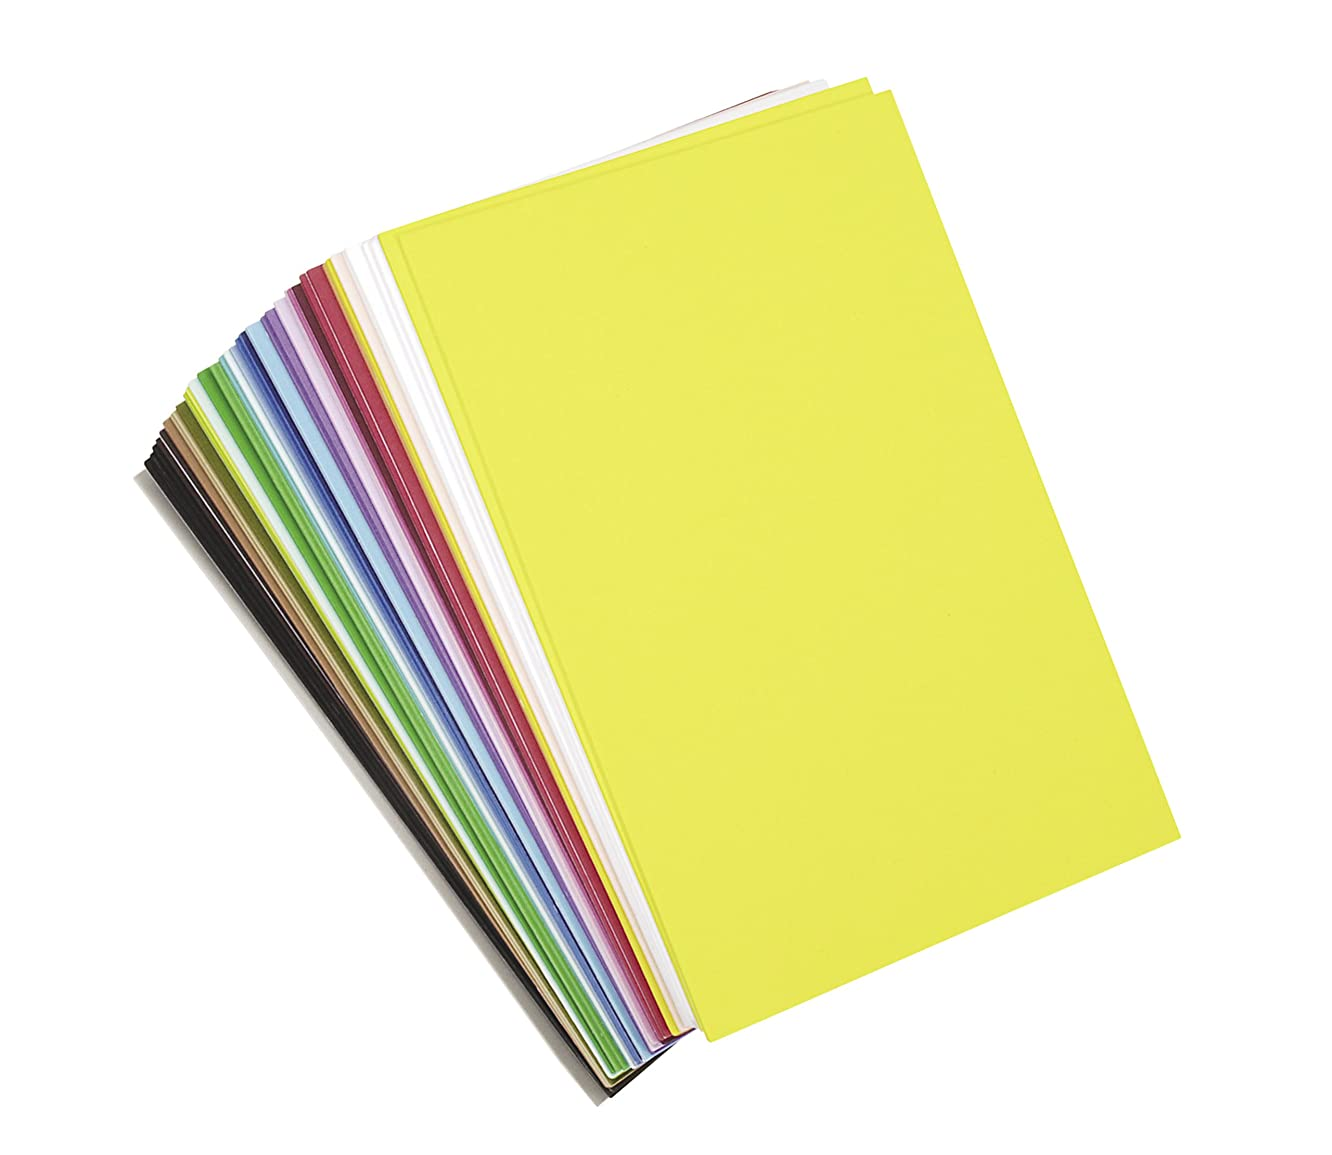 """Darice Foamies Foam Sheets Multipack – Assorted Vibrant Colors – Great for Craft Projects with Kids, Classrooms, Camps, Scouts, Parties – 6"""" x 9"""" Per Sheet, 40 Sheets Per Pack"""